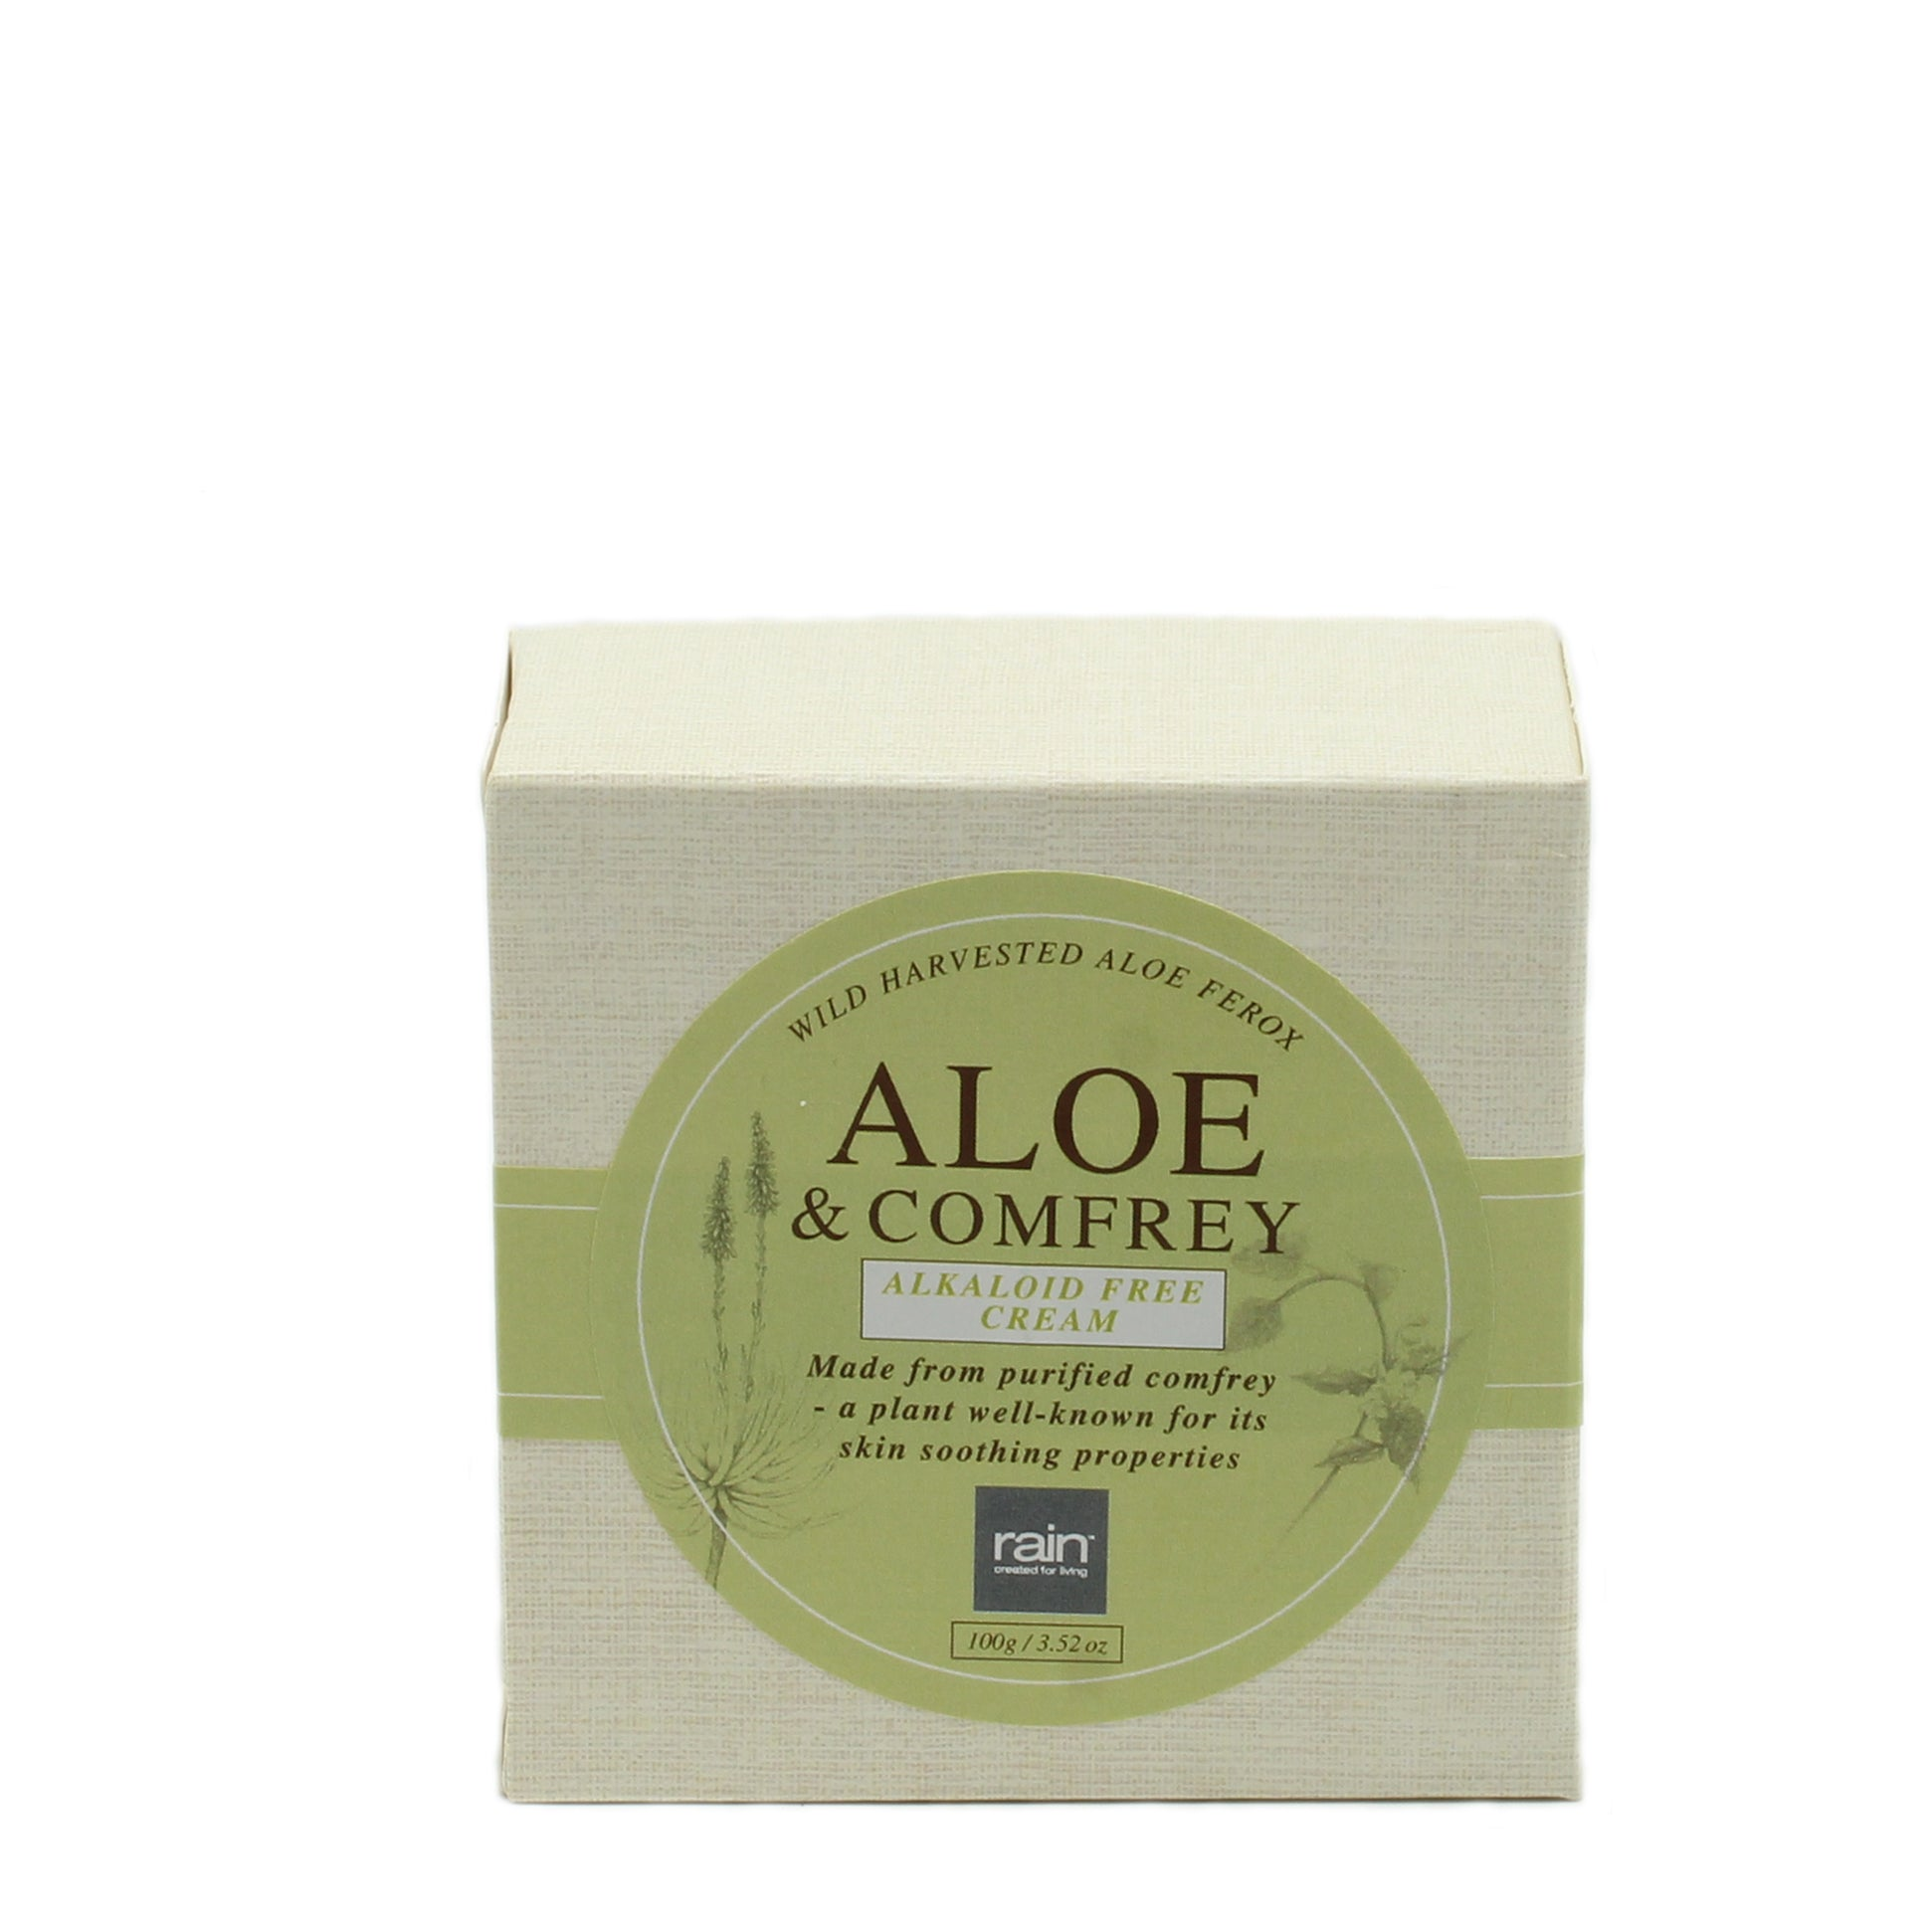 healing aloe and comfrey body cream